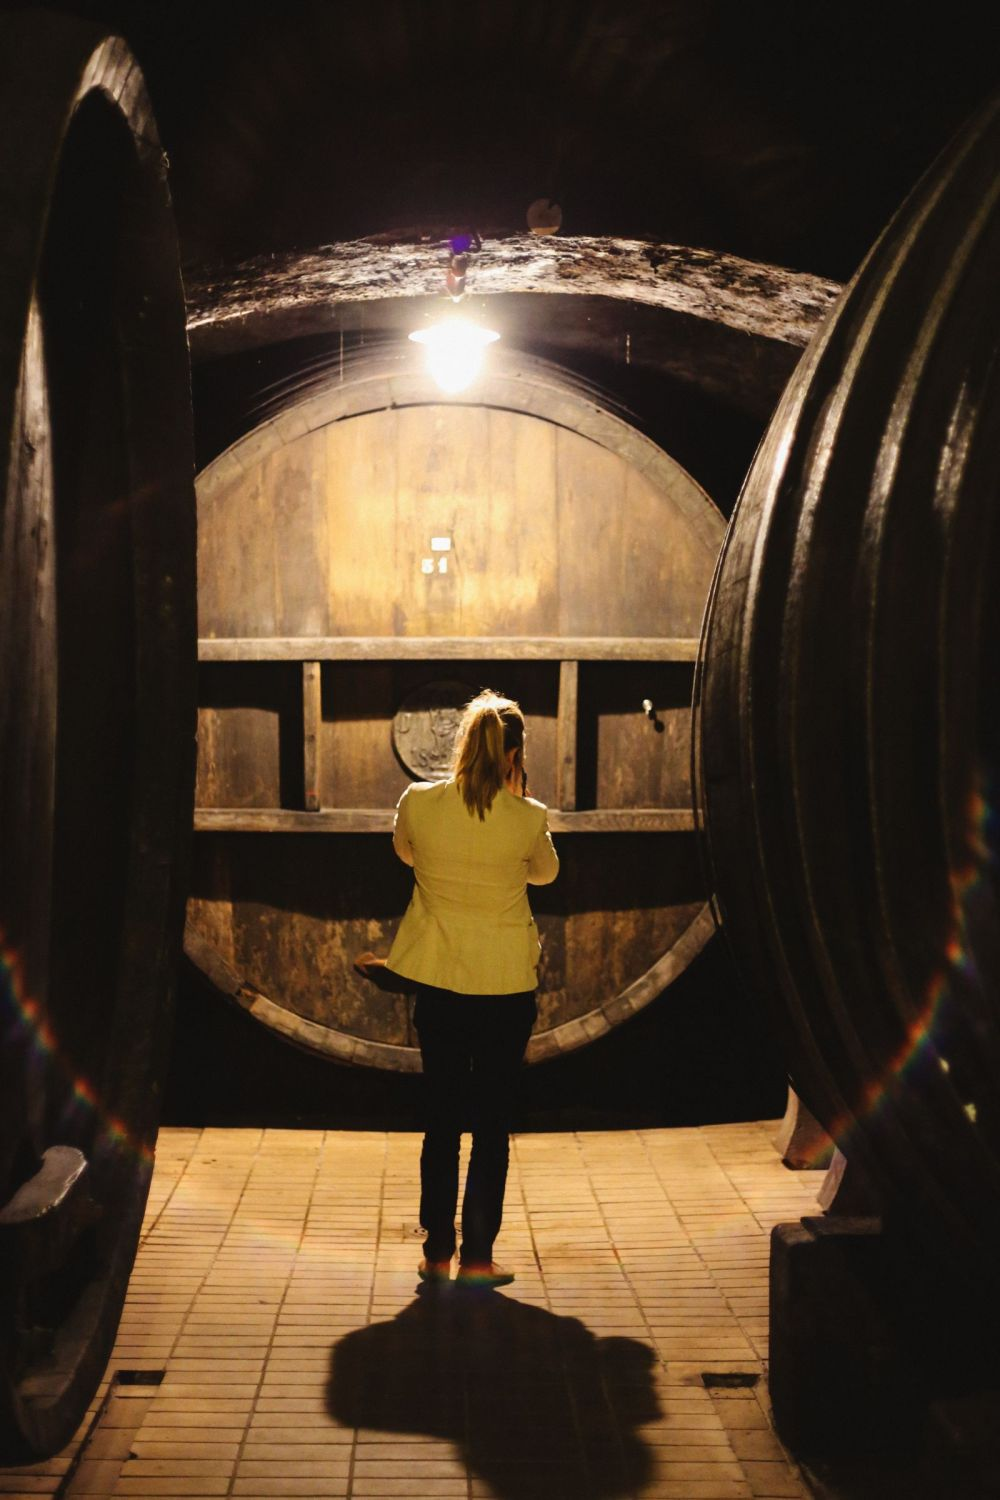 There's A Big Reason You Should Visit Slovenia This Year - The Wine! (10)